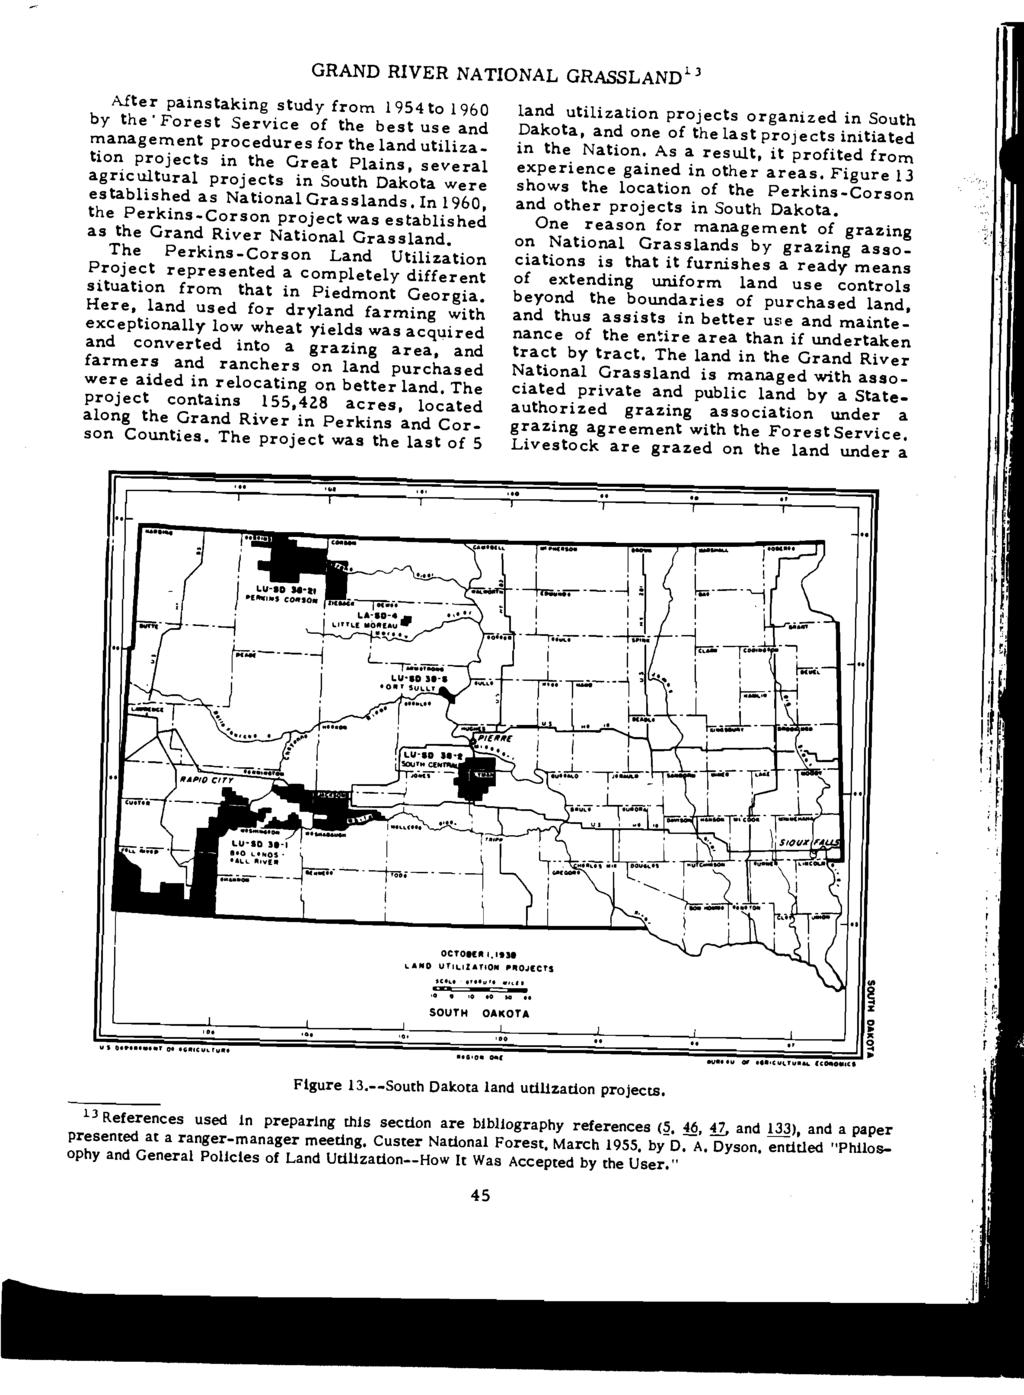 After painstaking study from 1954to 1960 by the Forest Service of the best use arid managerrent procedures for the land utiliza tion projects in the Great Plains, several agricultural projects in